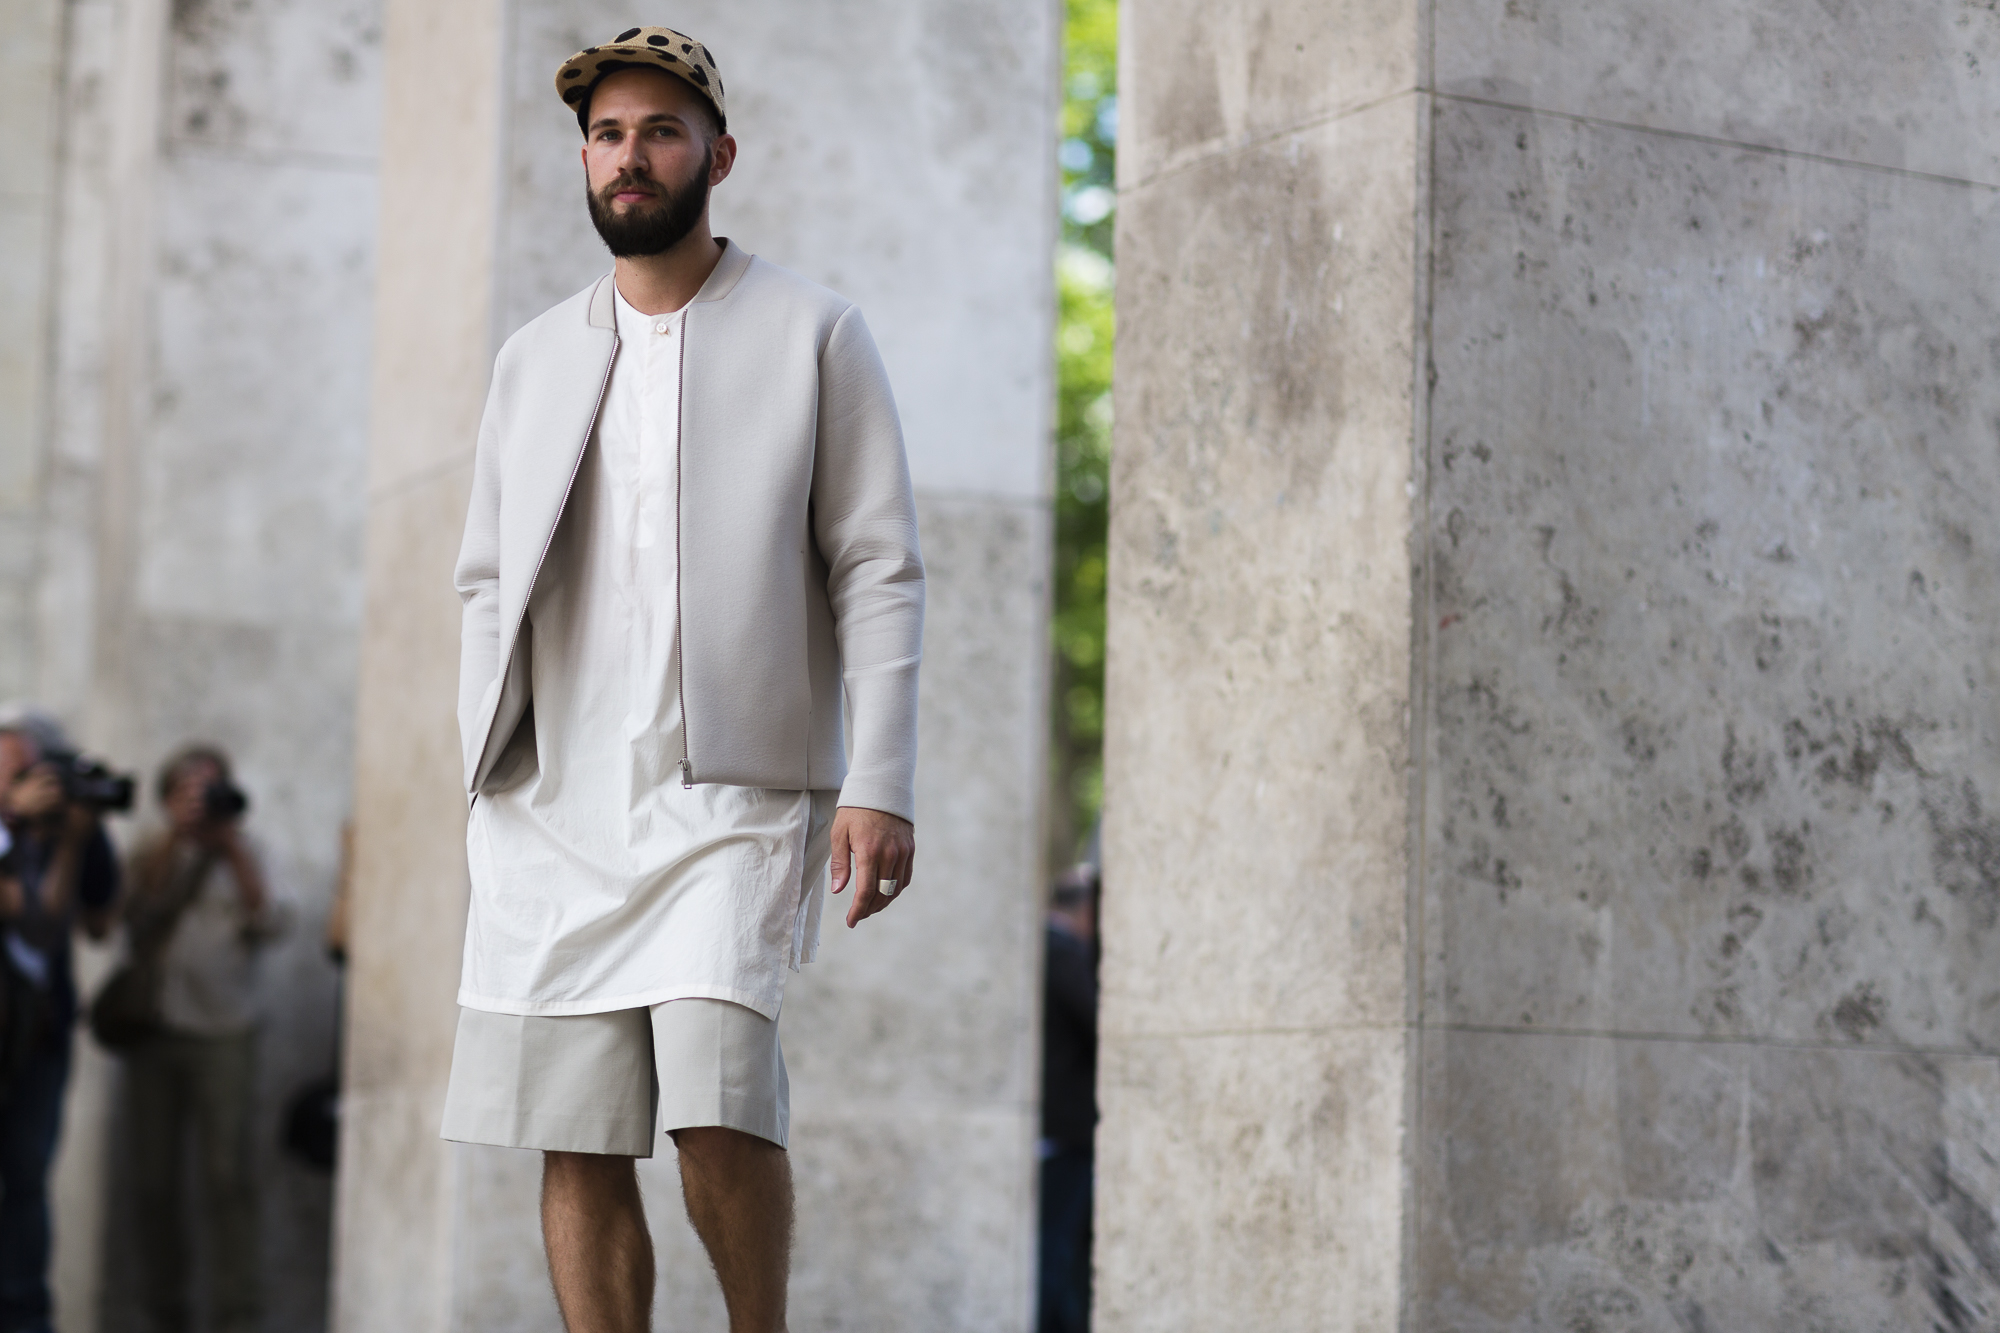 fa1224b83d Excellent Fashion Advice To Update Your Wardrobe - Stuart Weitz Man